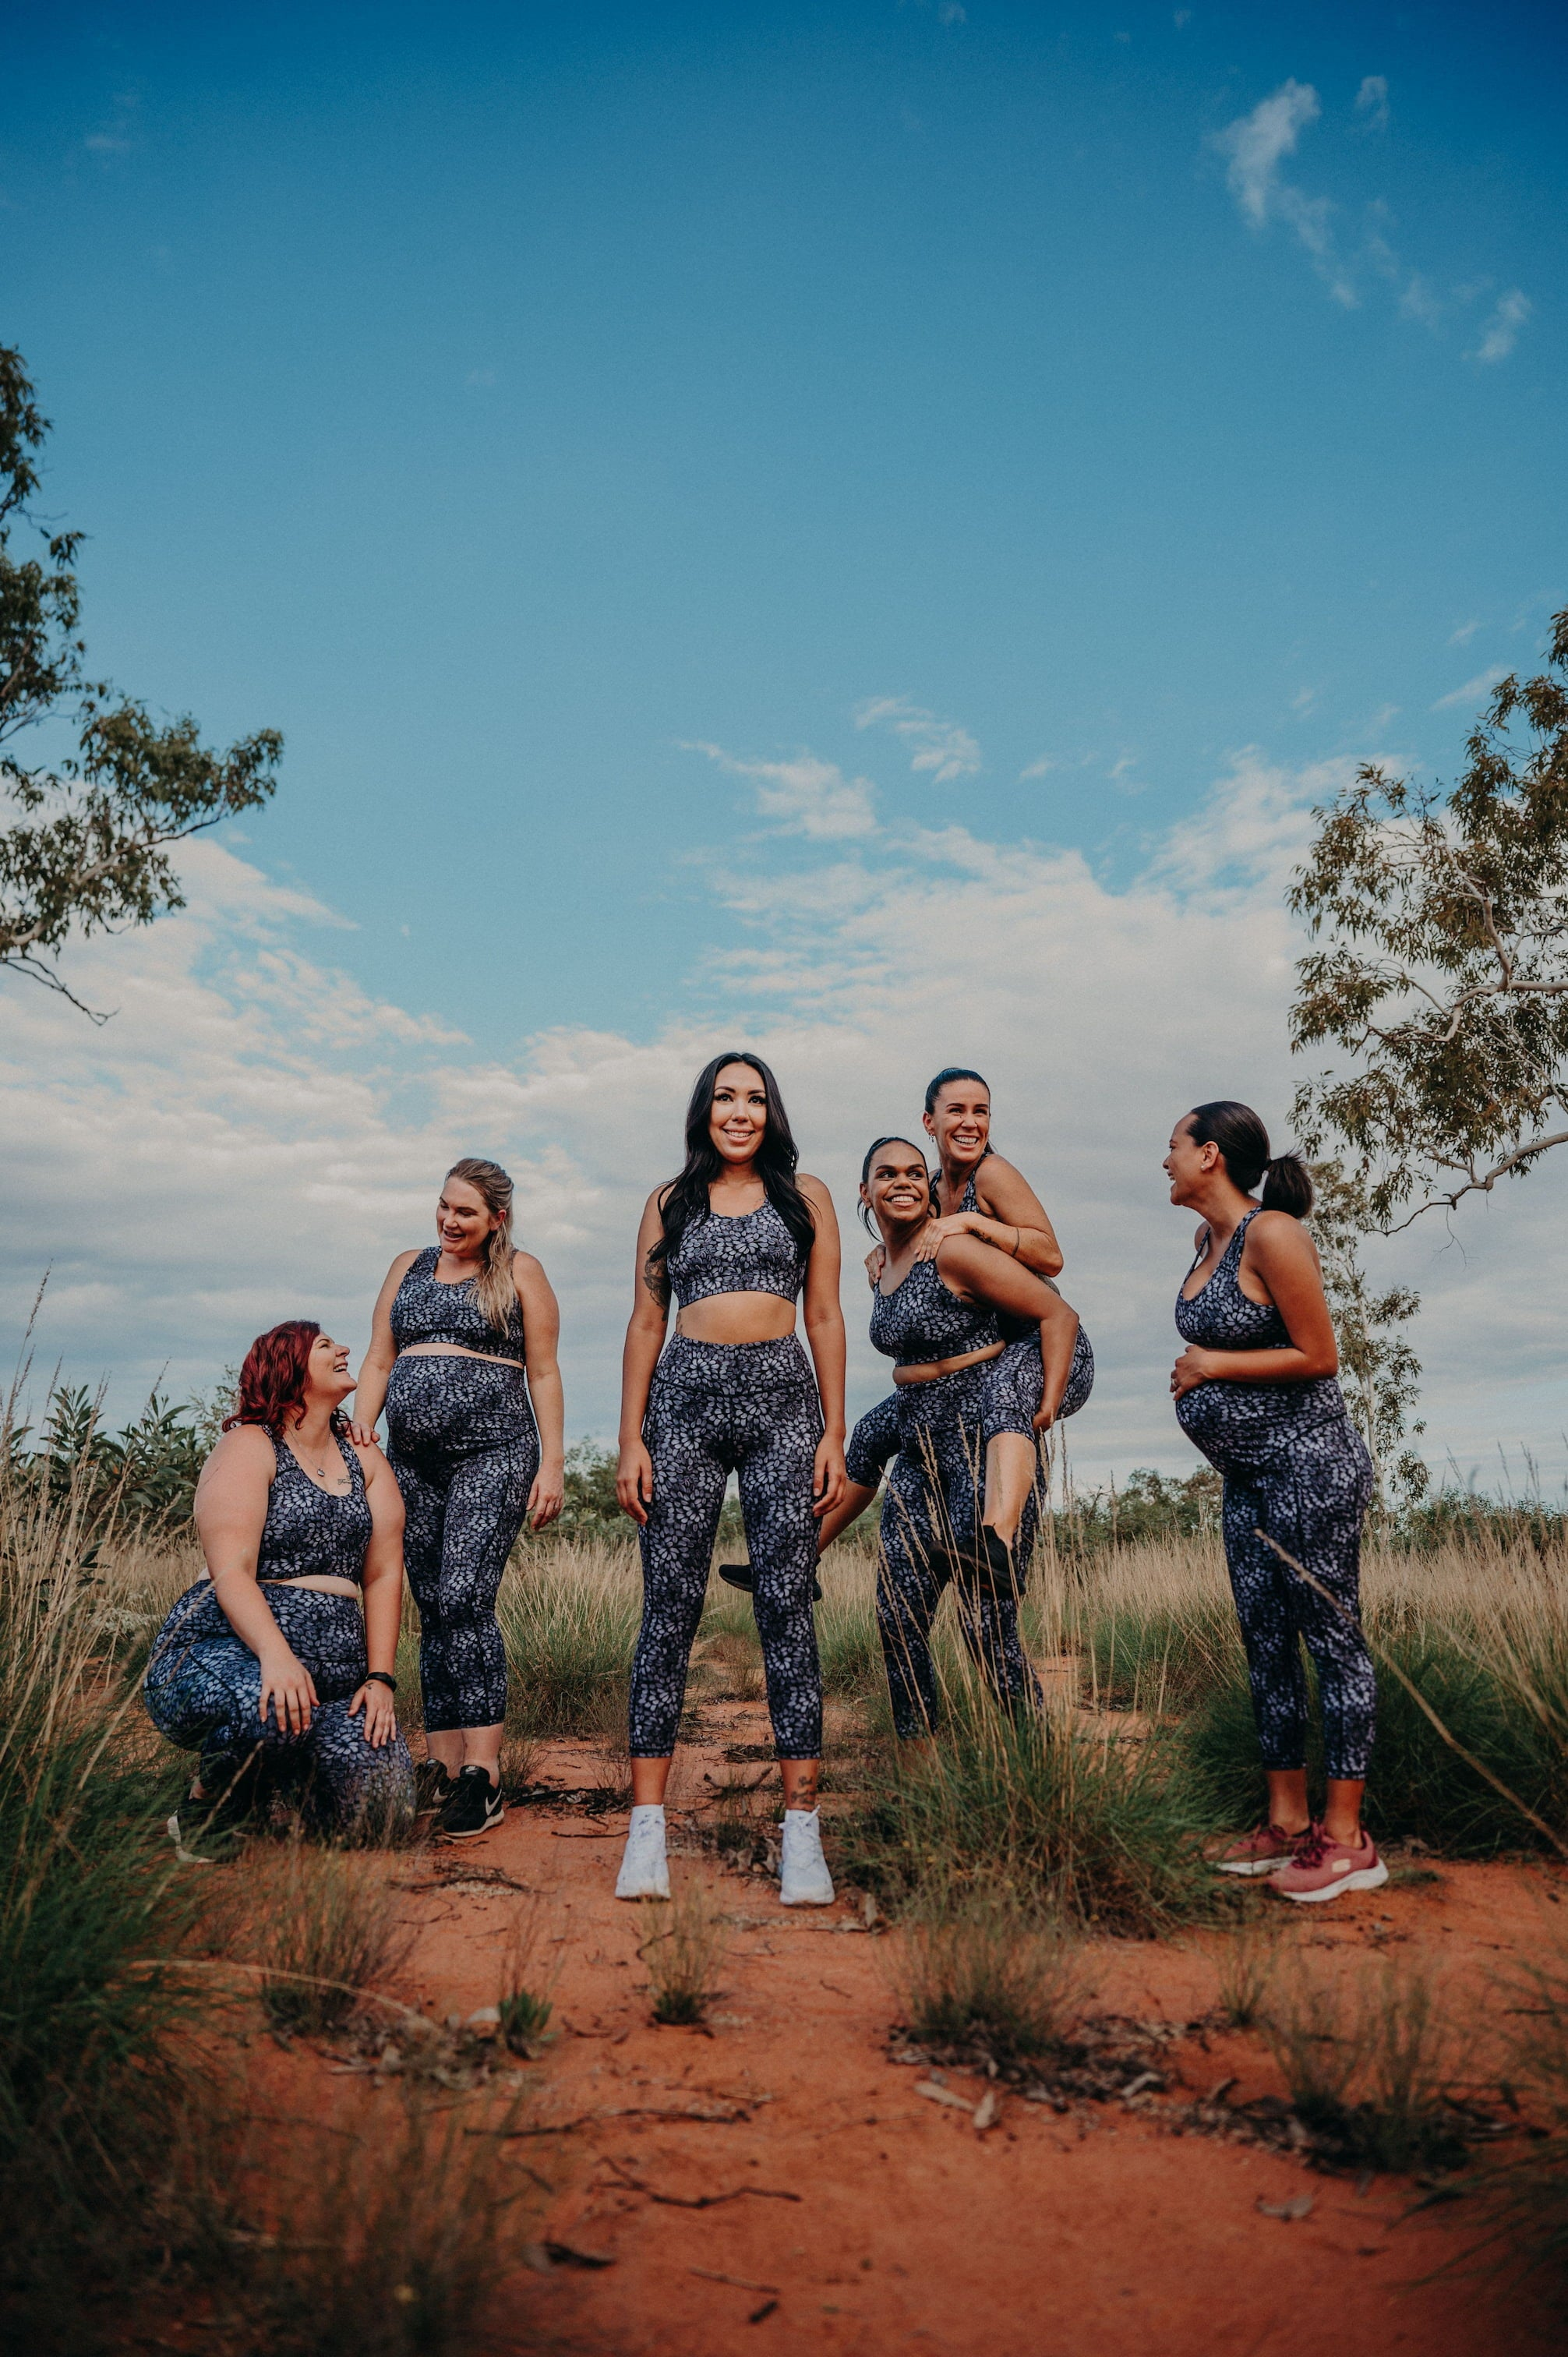 Indigenous activewear